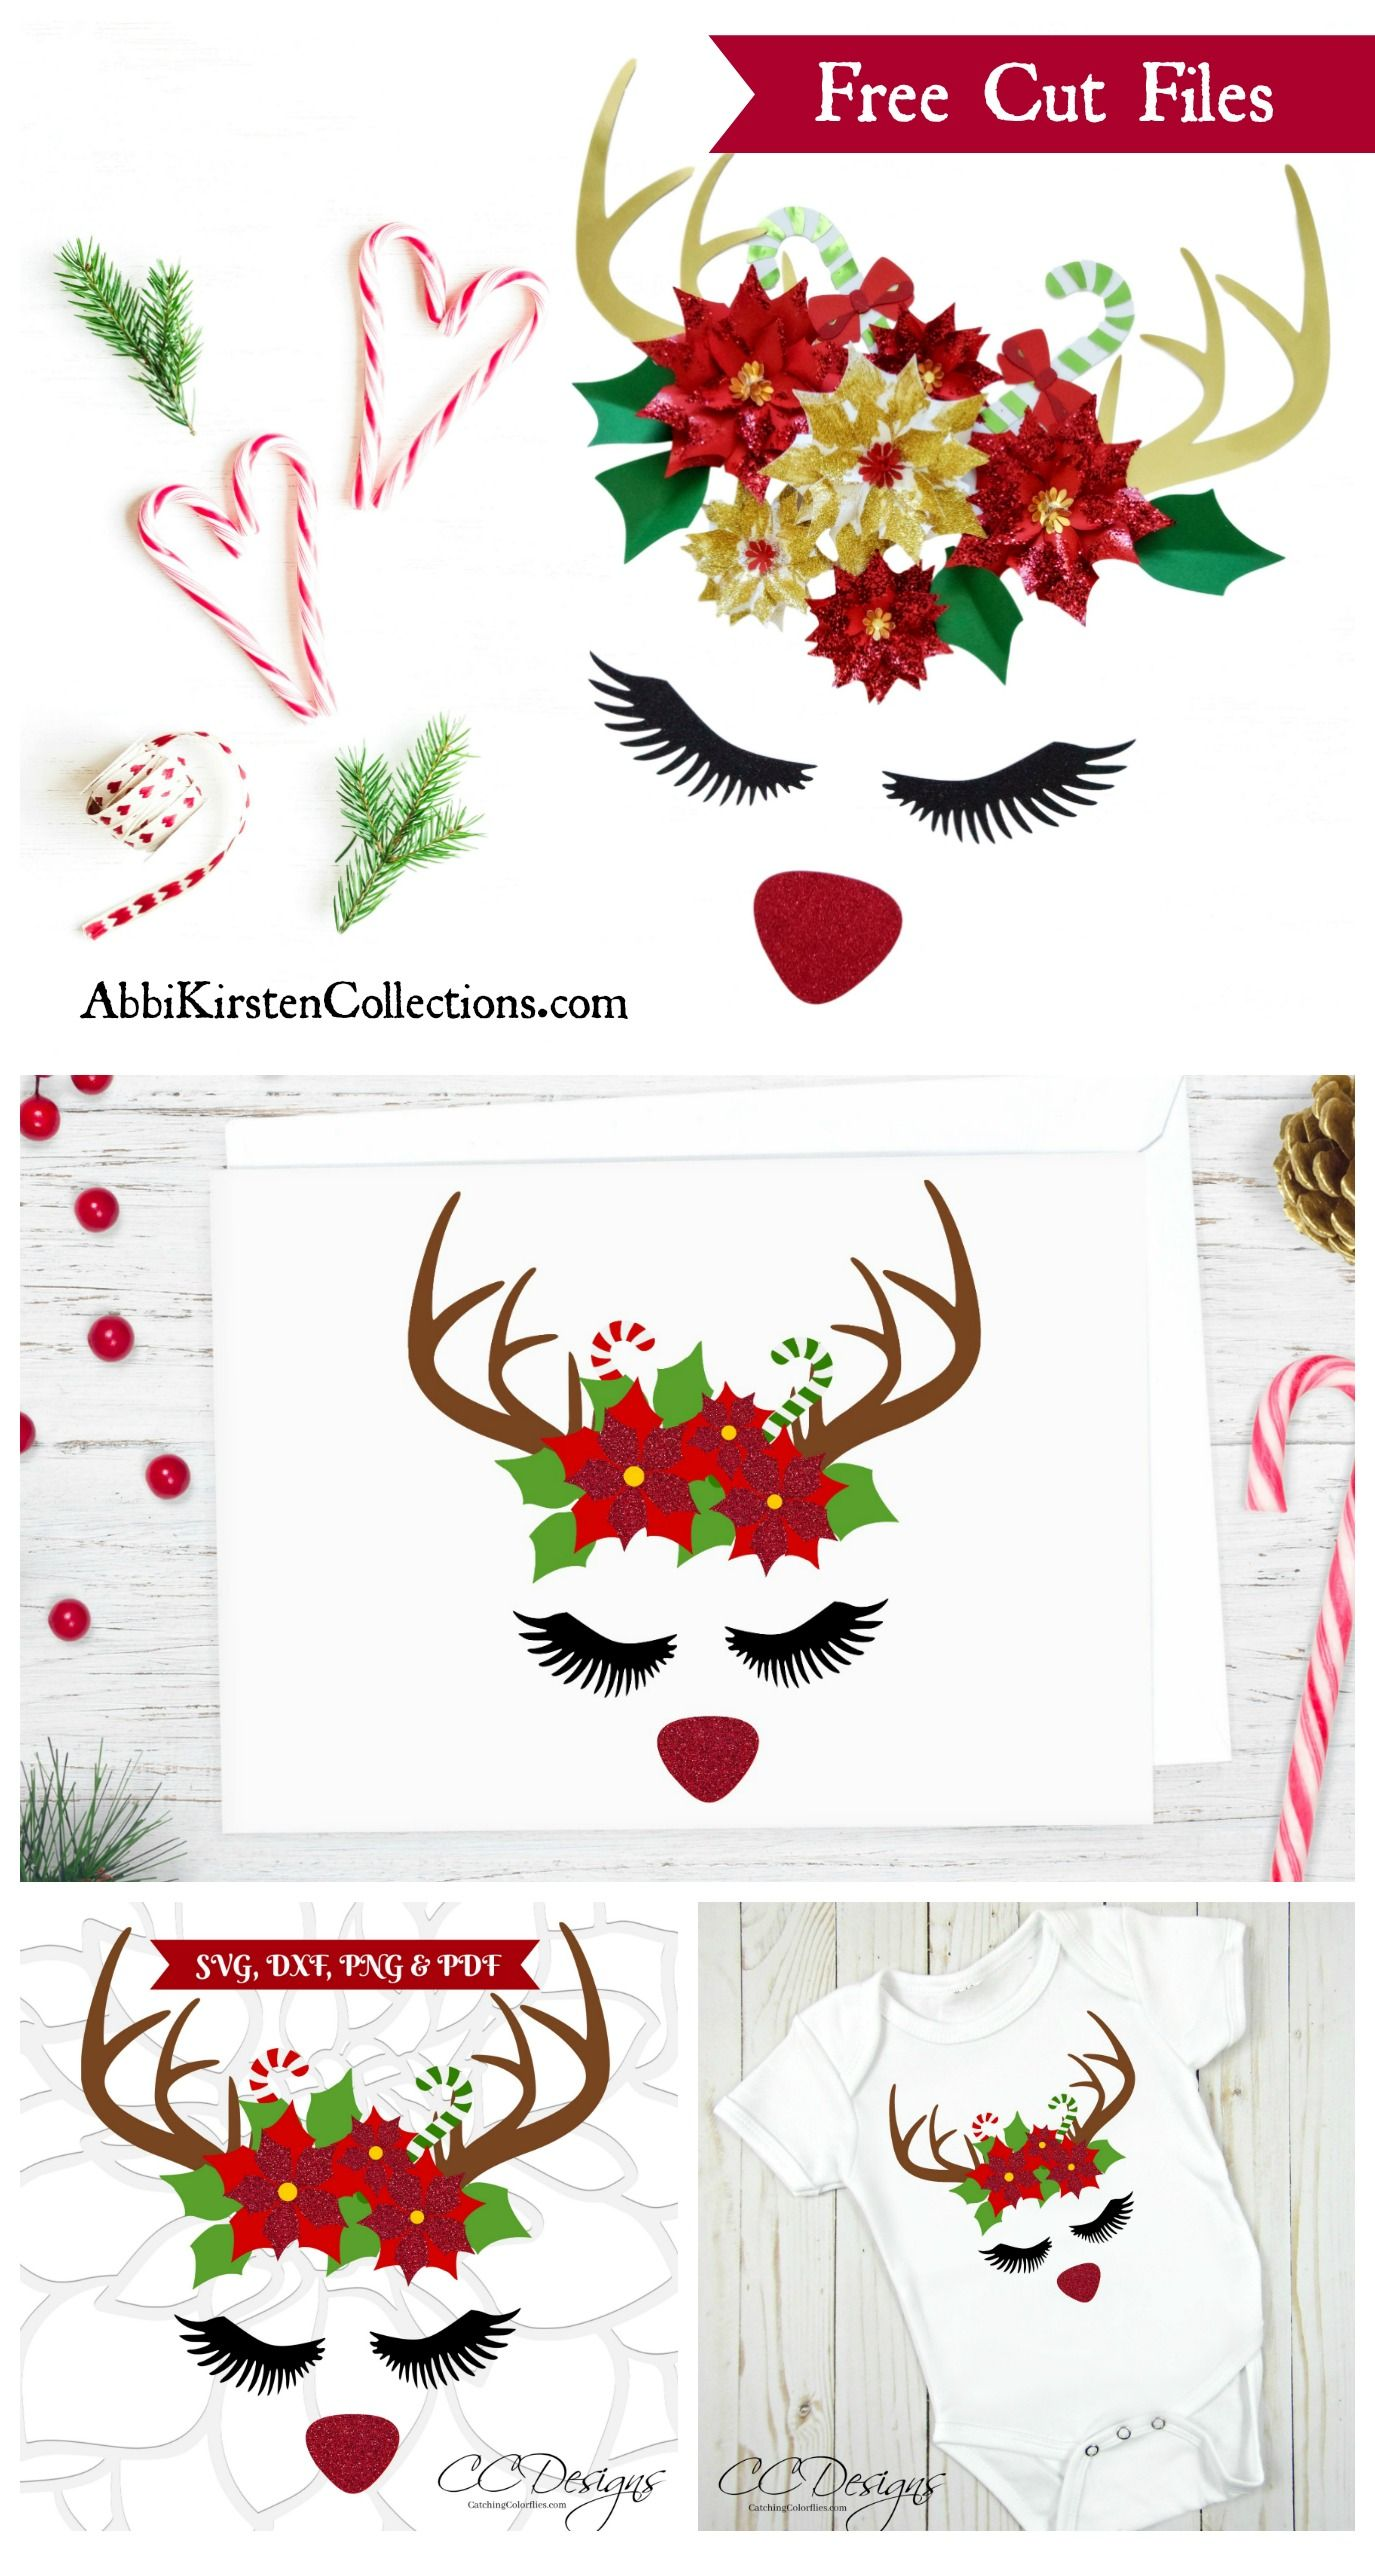 Pin on Christmas crafts 2015